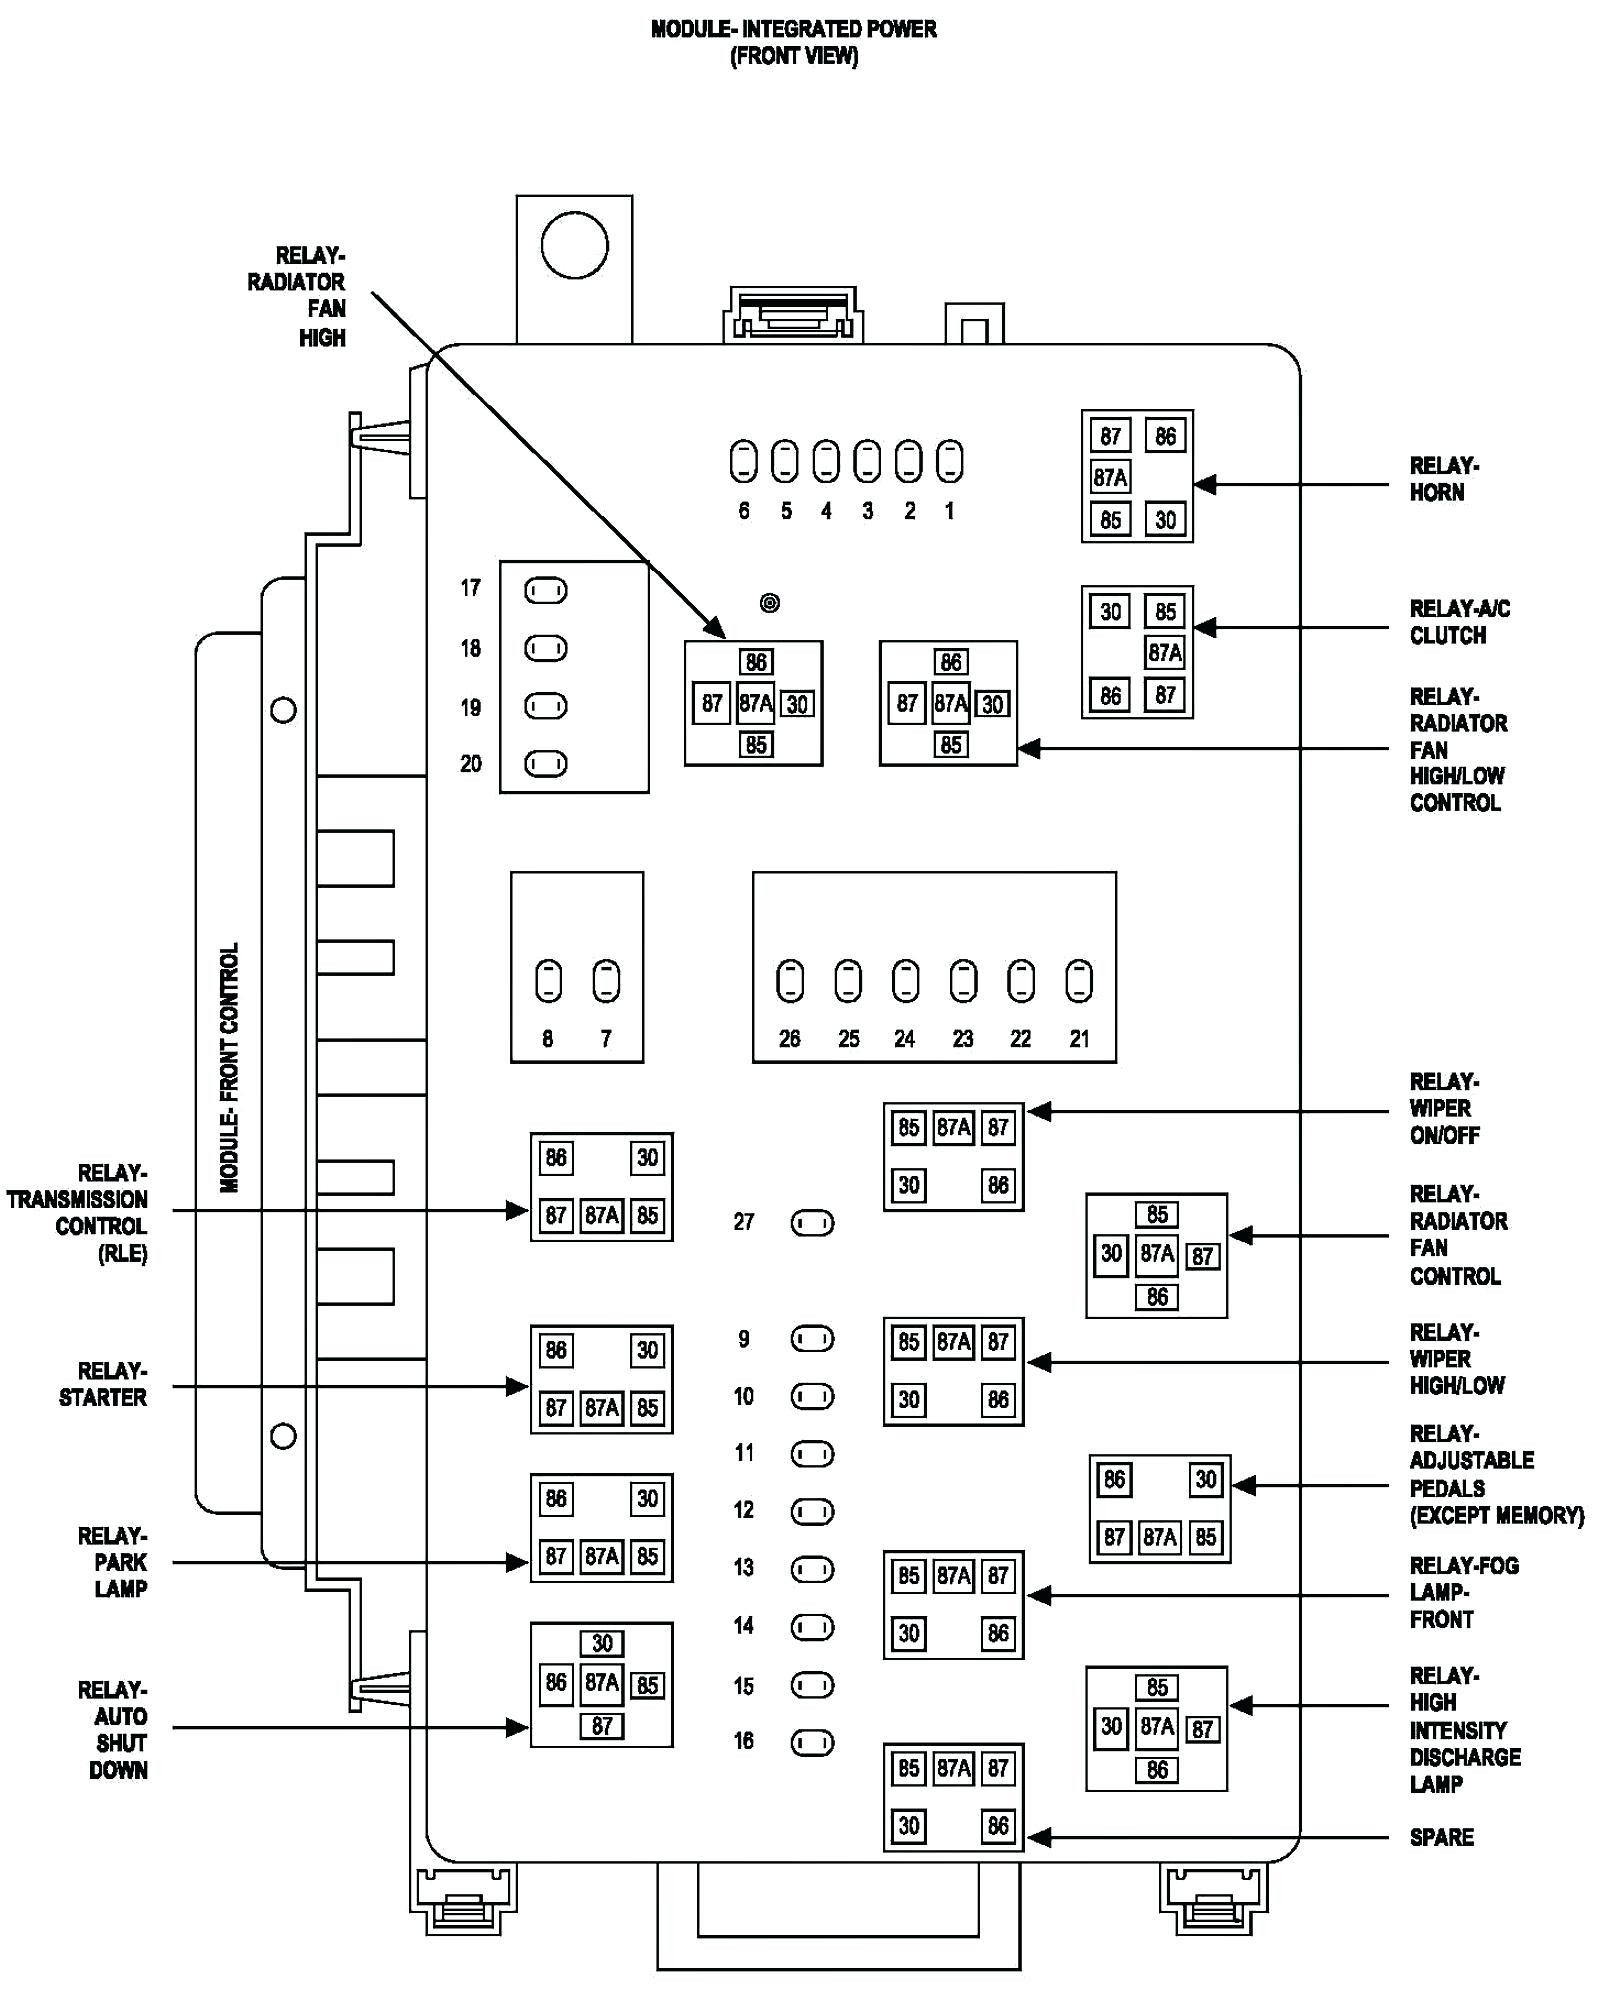 Peugeot 107 Fuse Box Diagram - Schematics Online on